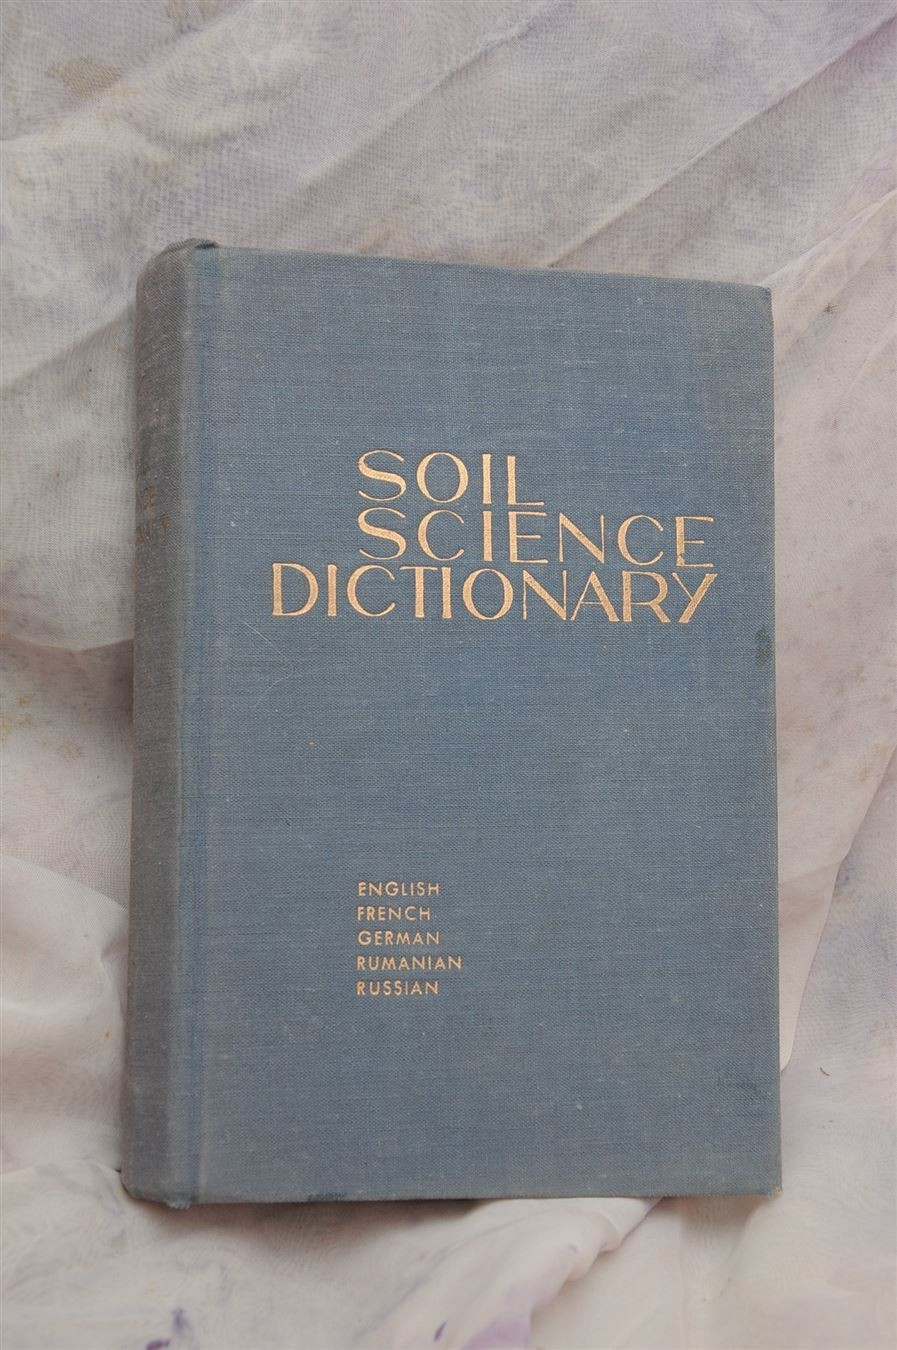 Soil science dictionary 36751083 for Soil dictionary